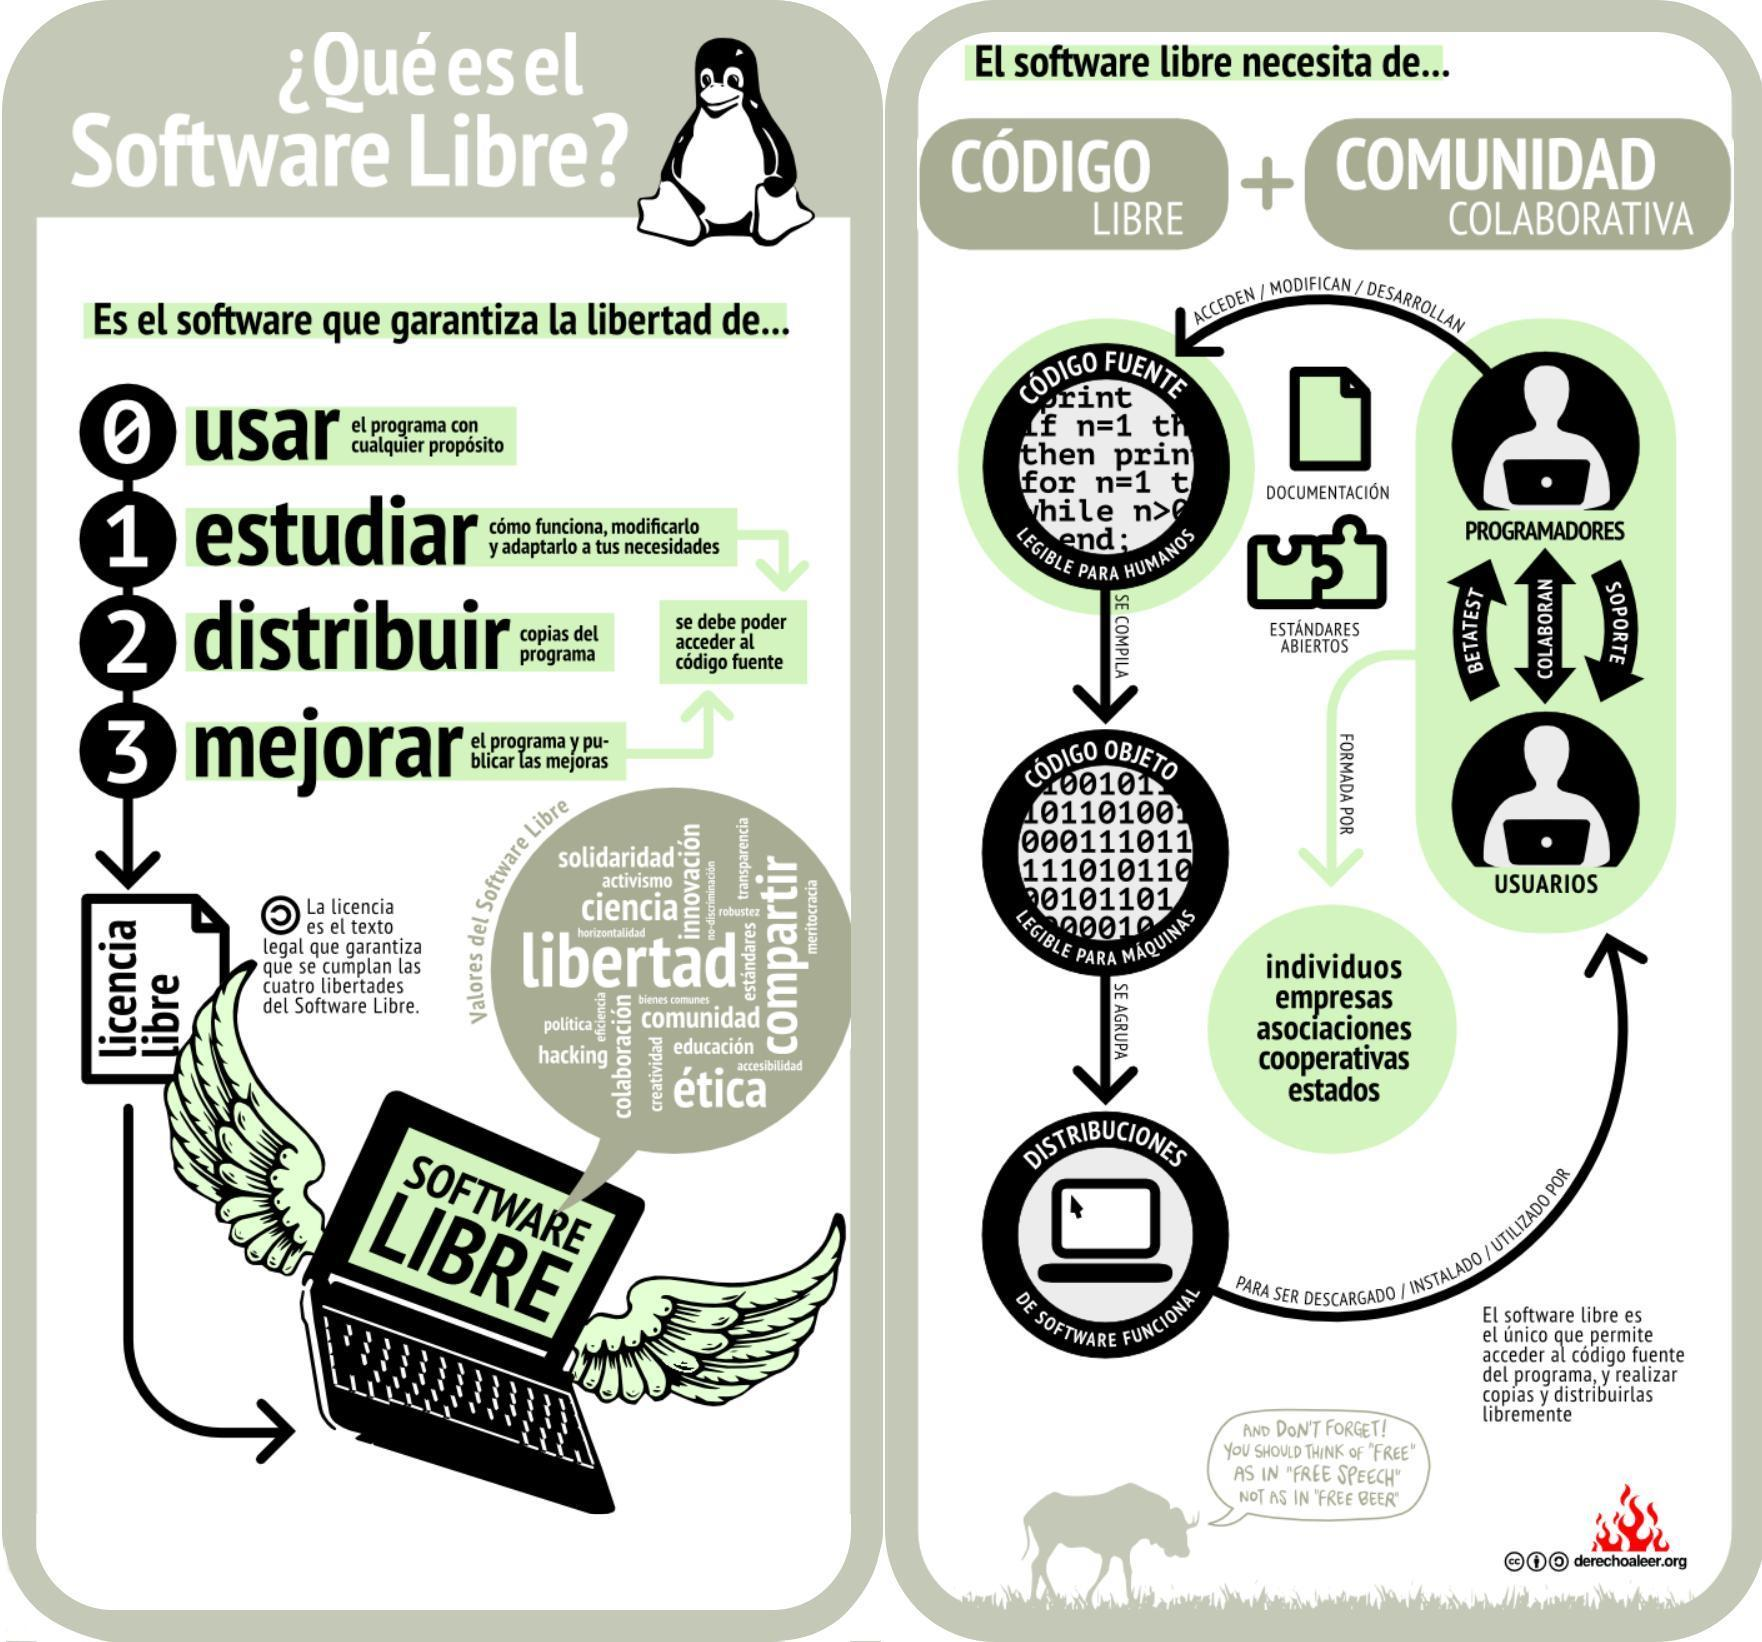 Descargar Software Libre Descarga Programas Totalmente Gratuitos Software Libre